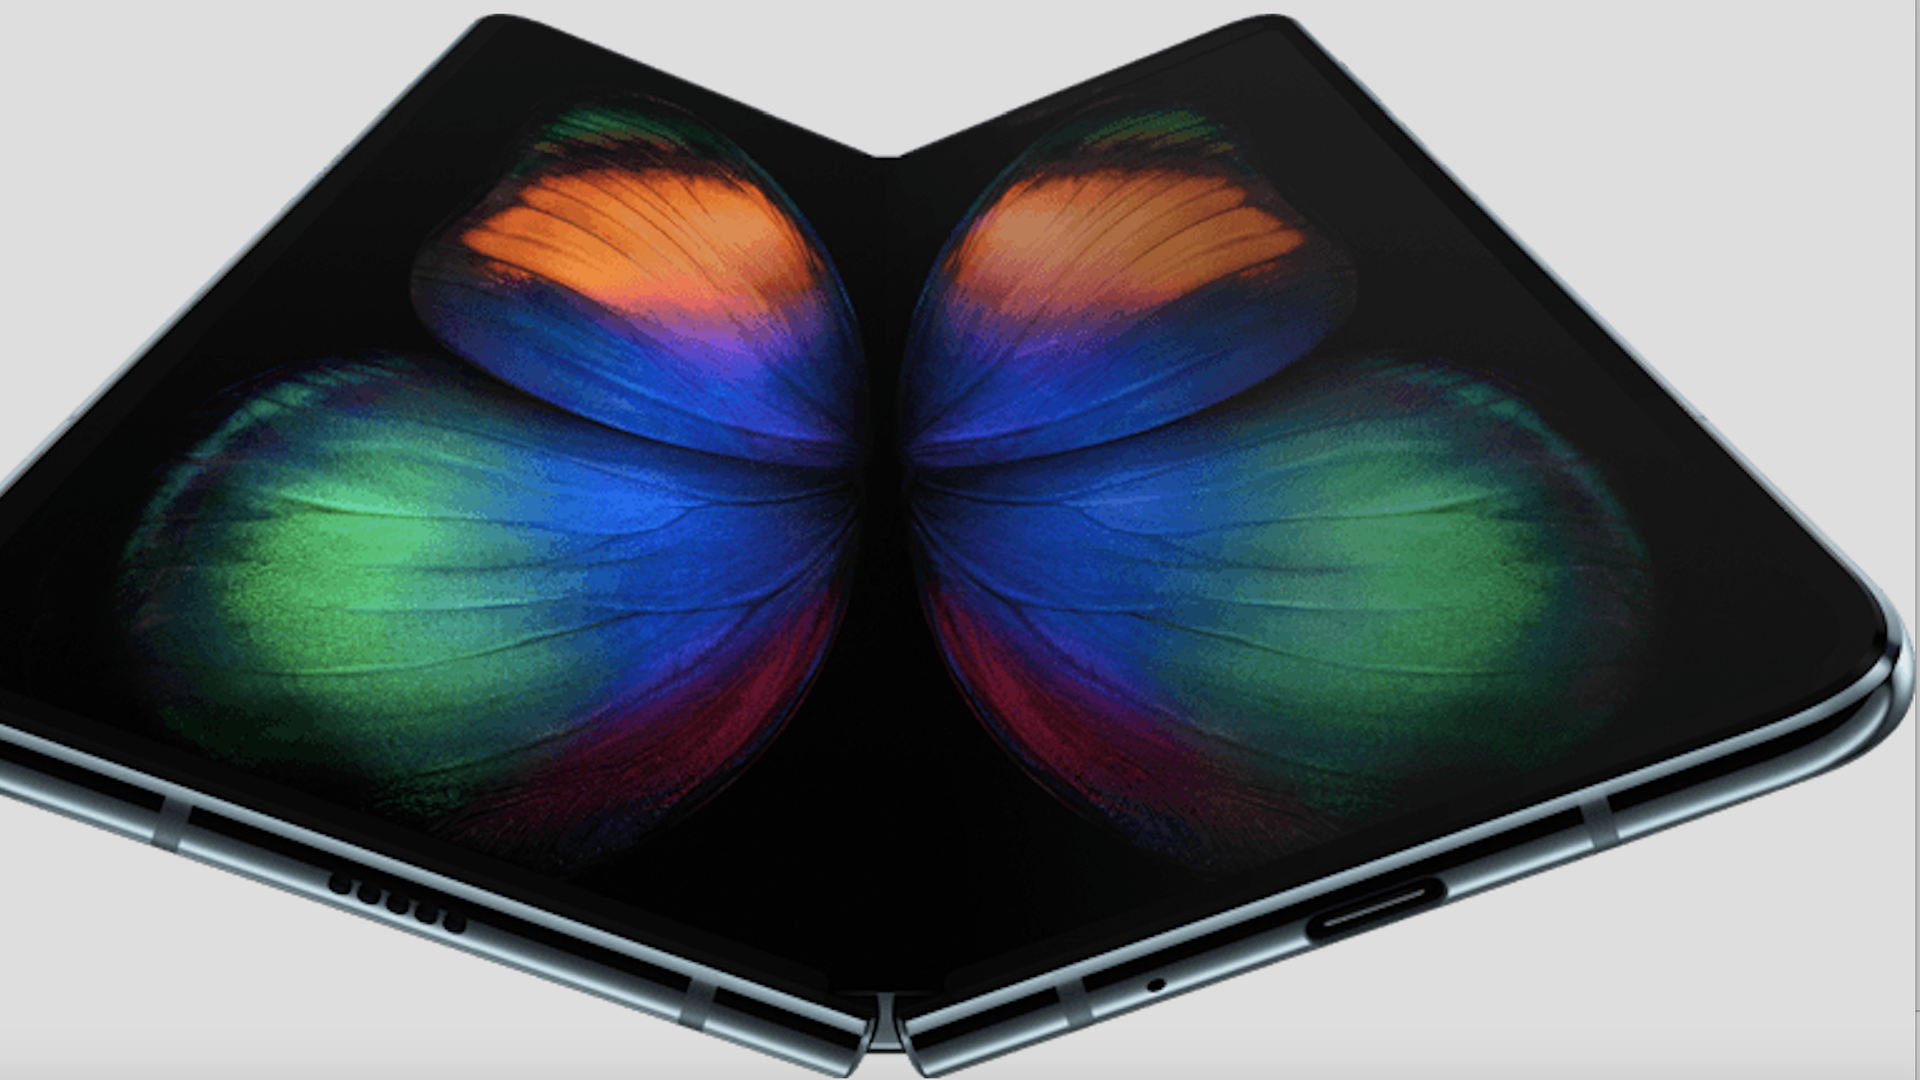 Samsung officially delays Galaxy Fold